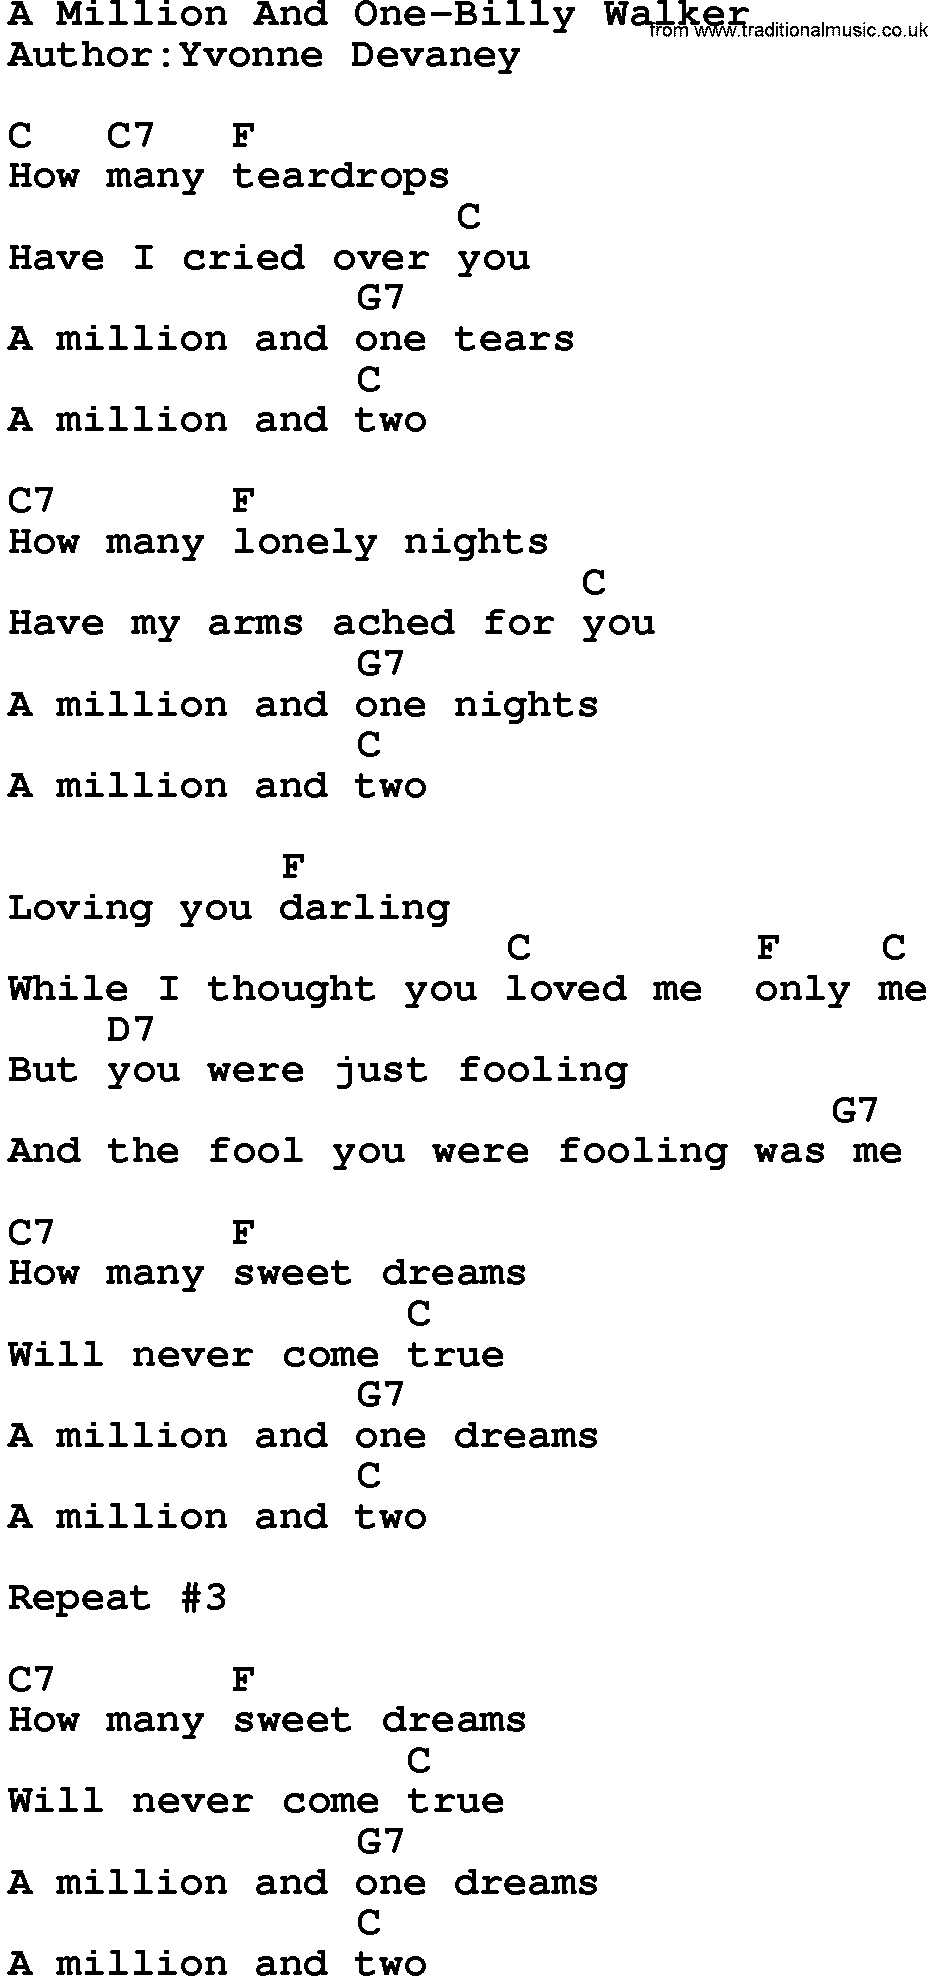 graphic relating to A Million Dreams Lyrics Printable known as Place Audio:A Million And Just one-Billy Walker Lyrics and Chords